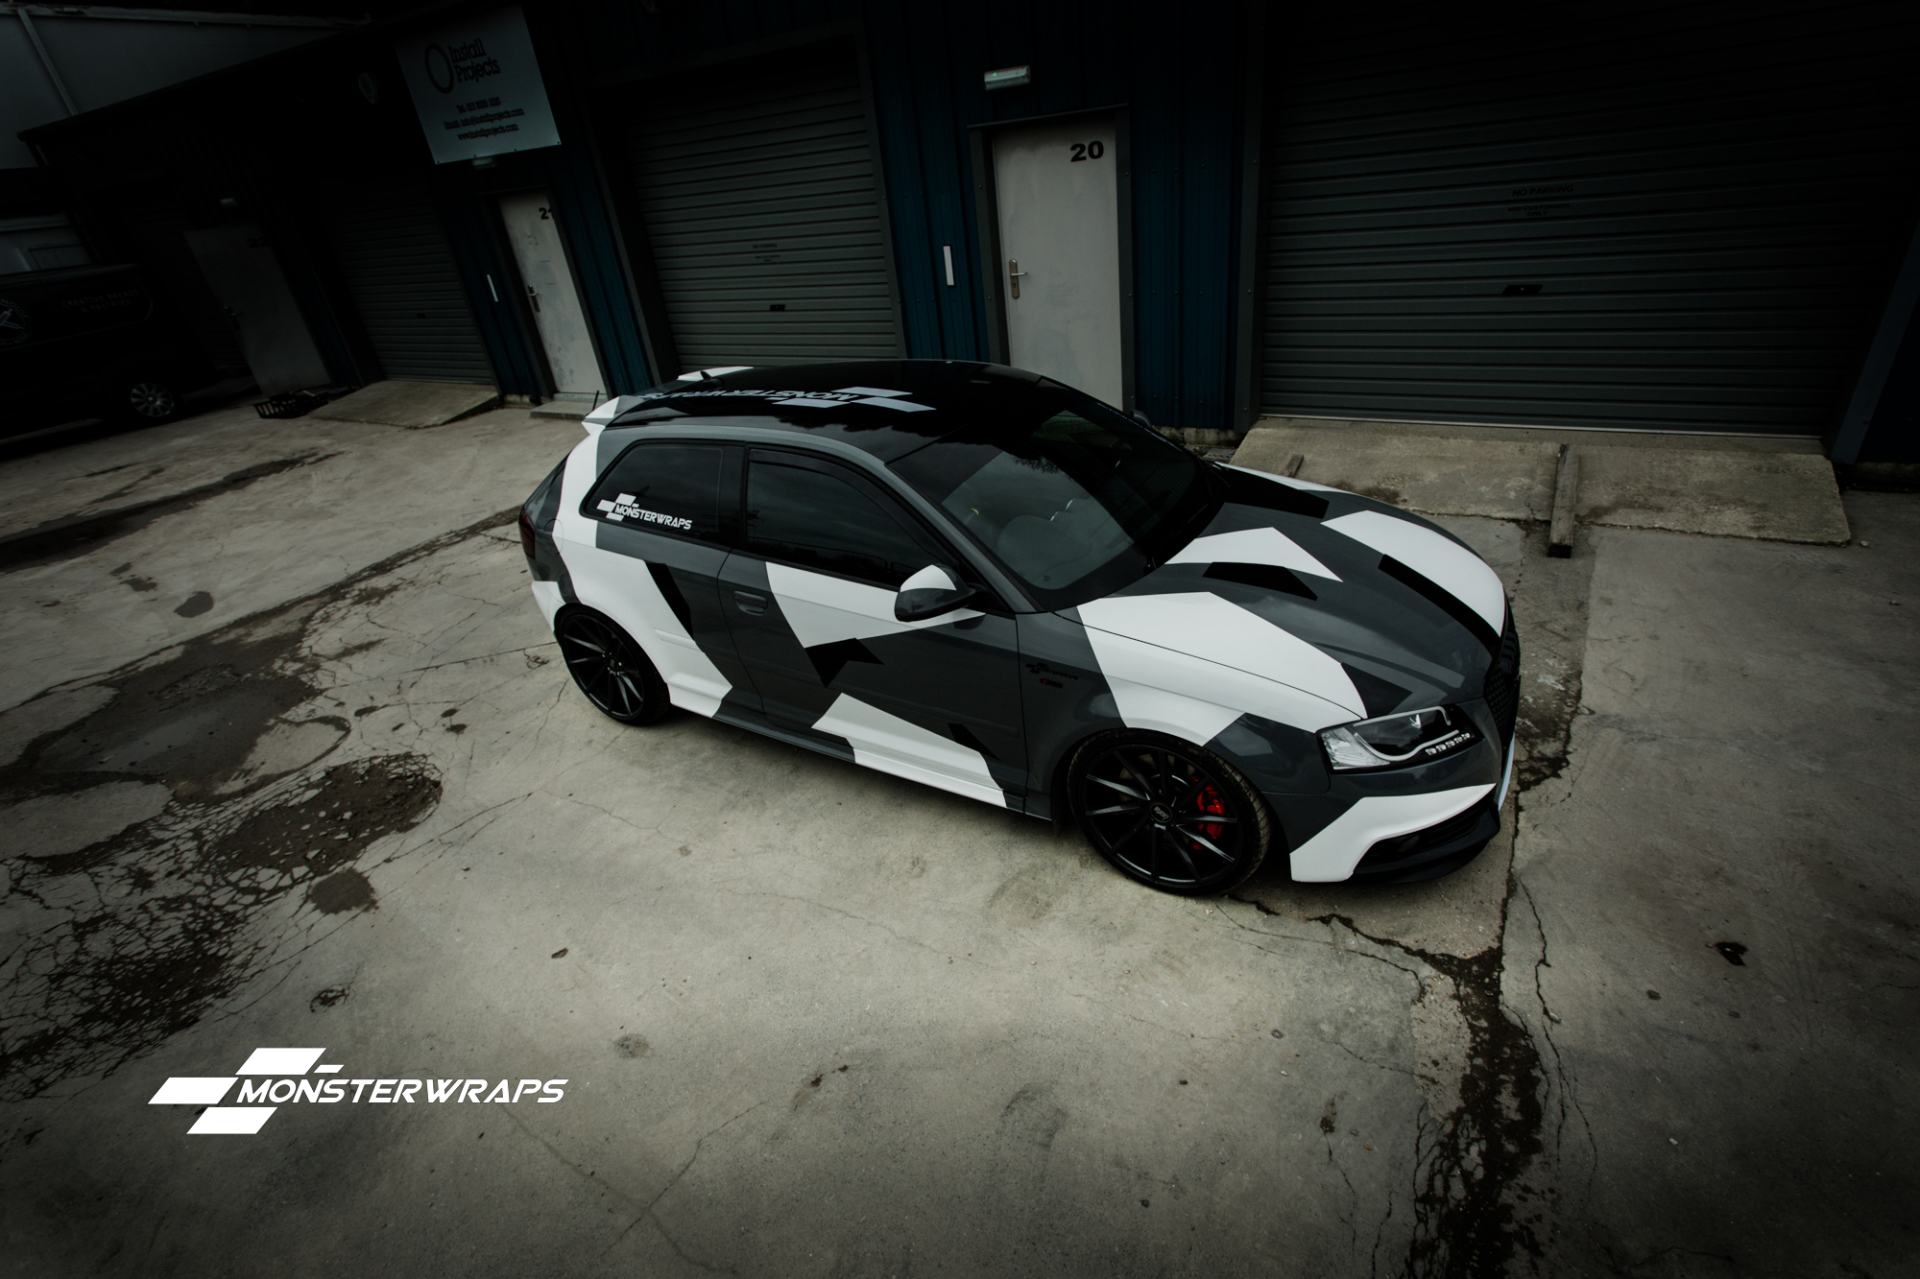 Camo Vinyl Wrap For Car Interiors Car Wrapping In London